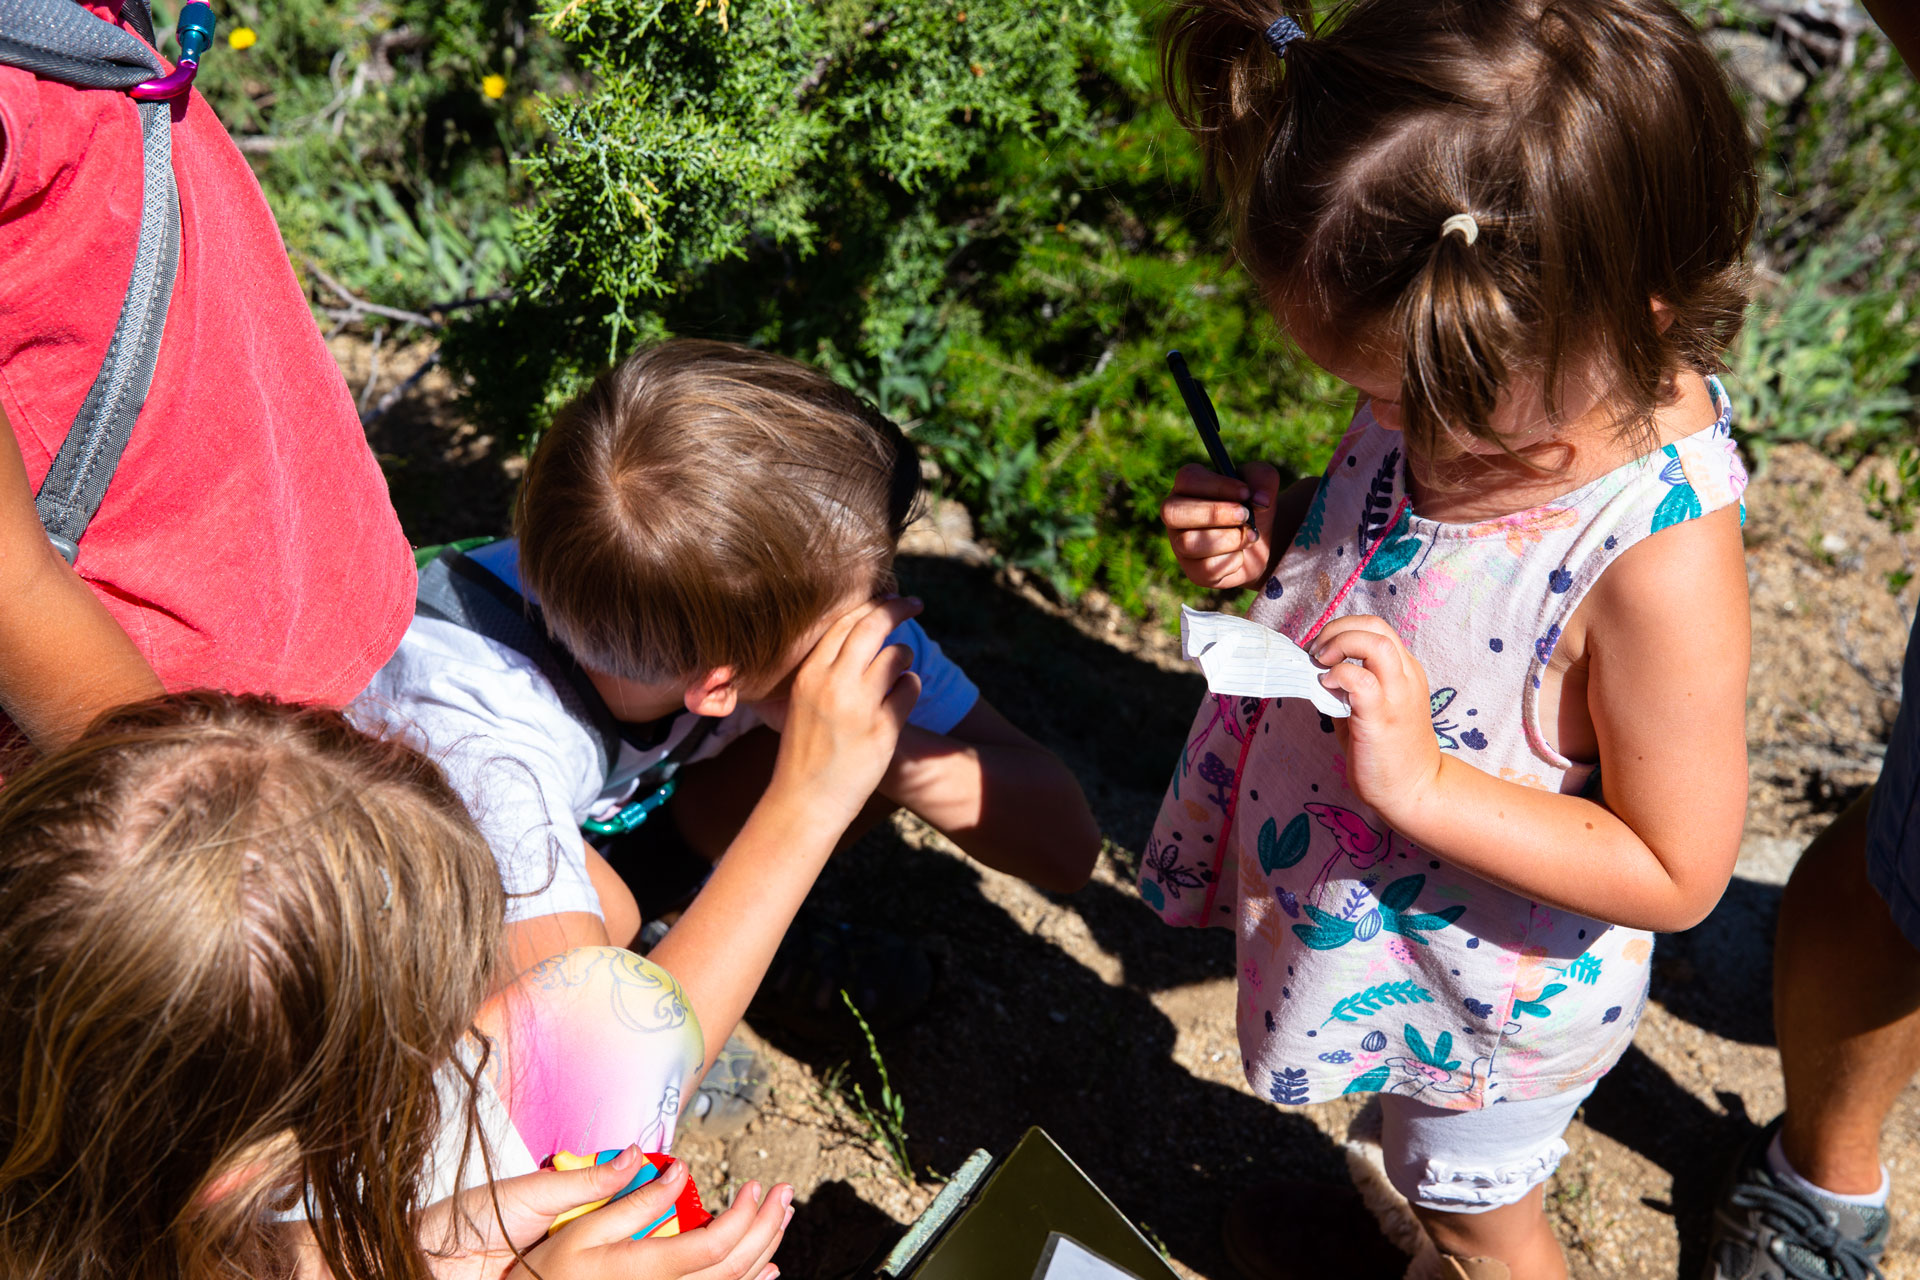 kids looking through a geocache and writing their names on the paper